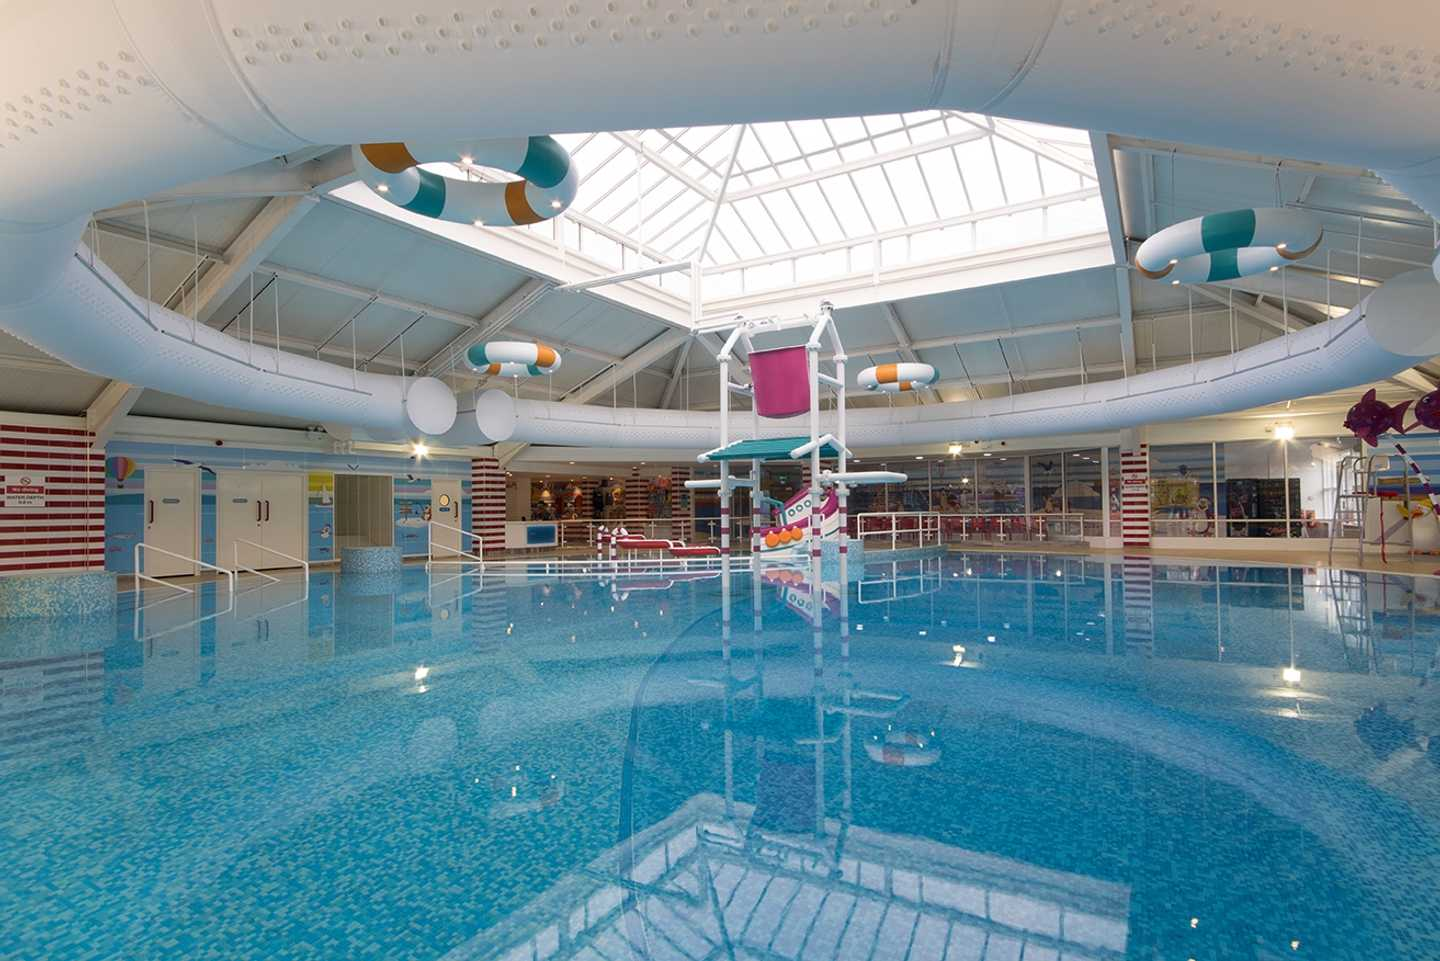 The indoor pool at Thorpe Park